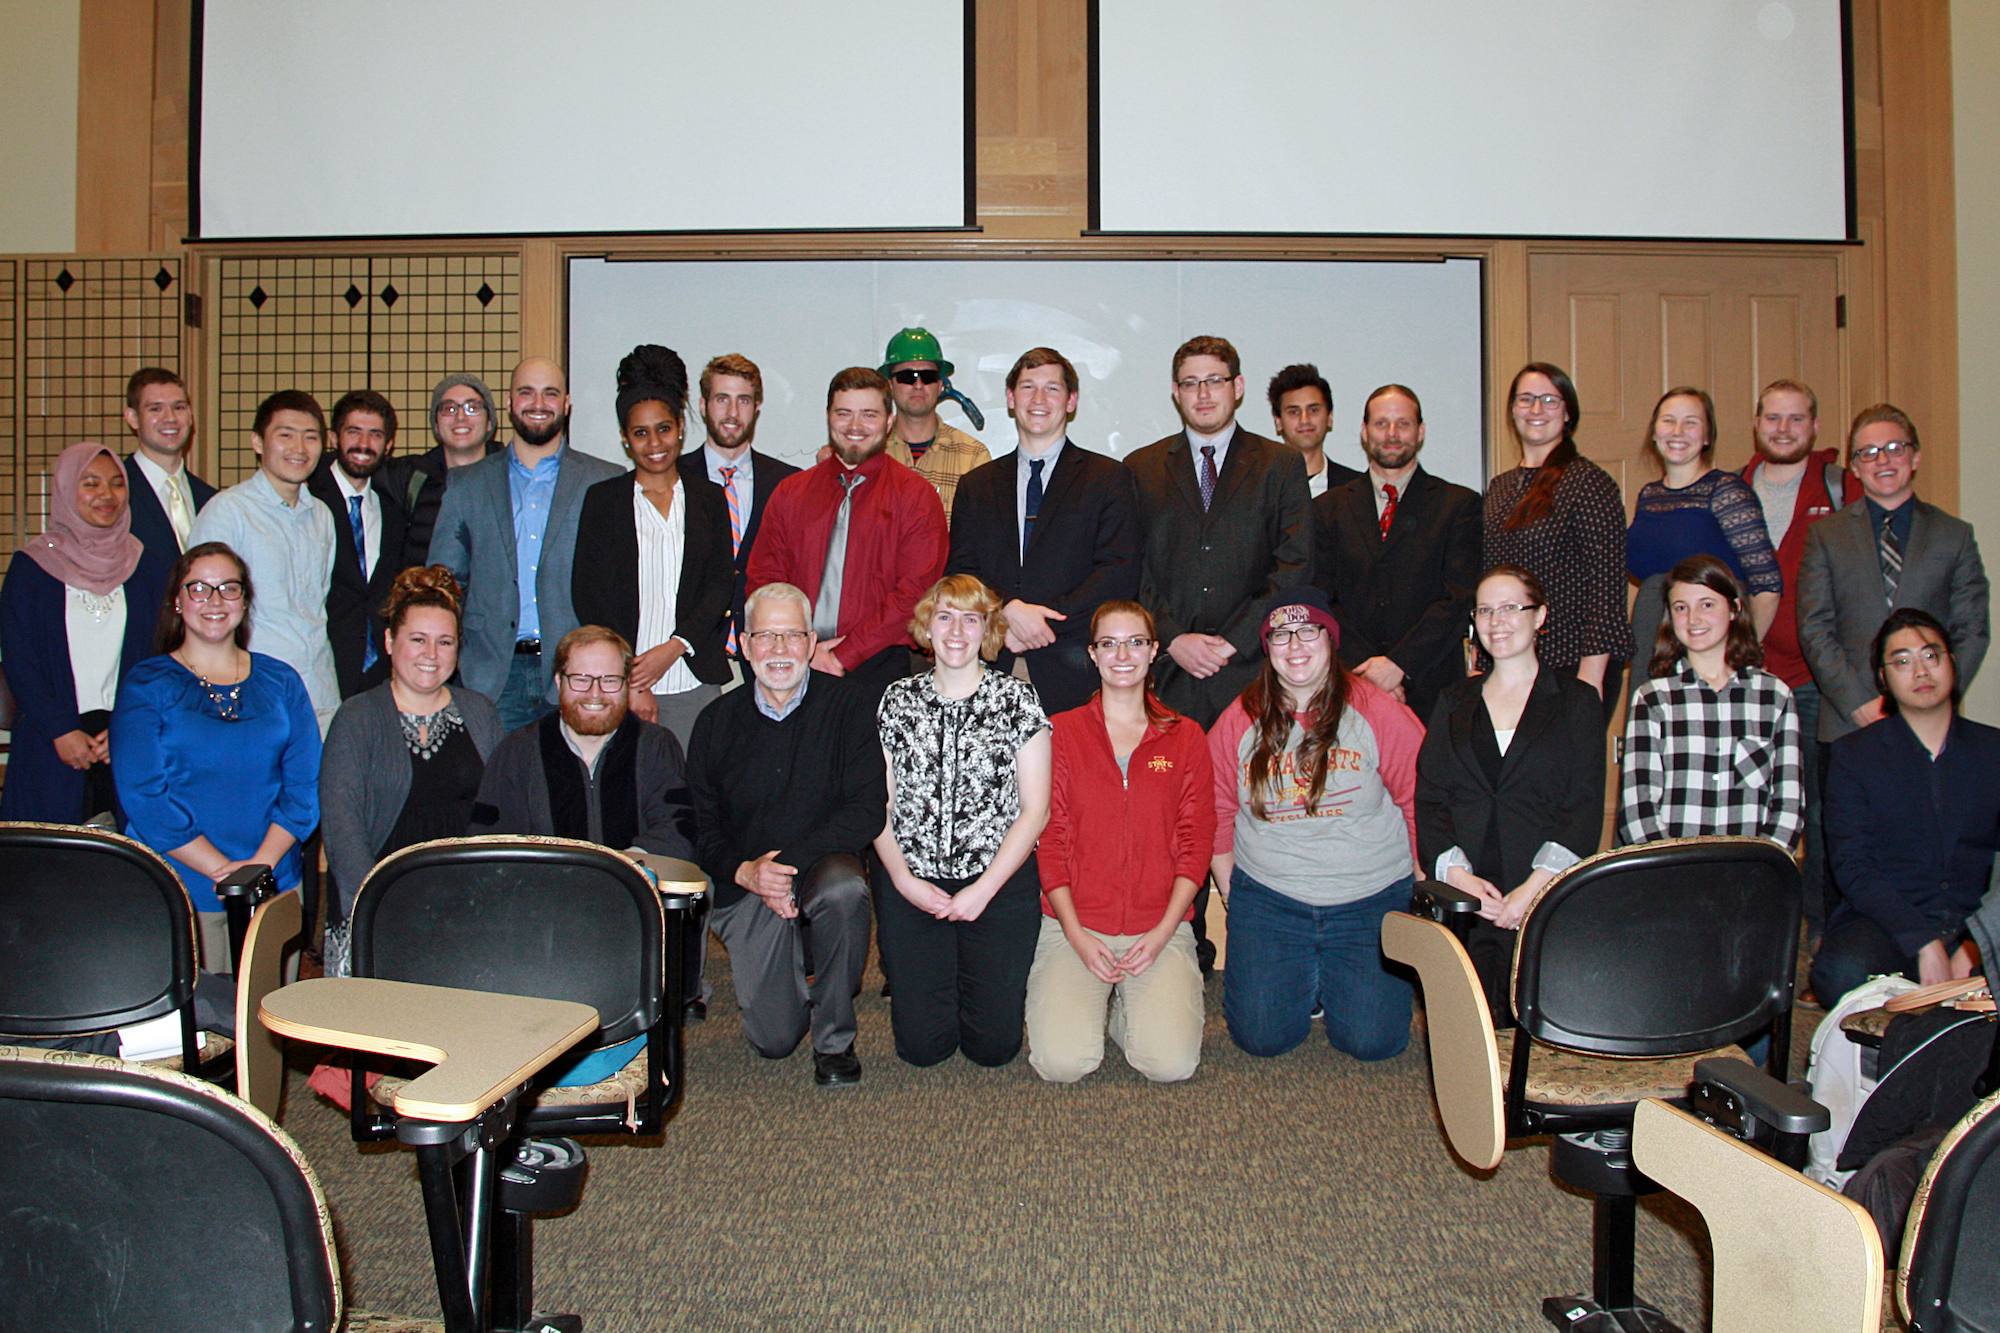 Students and faculty pose in two rows.